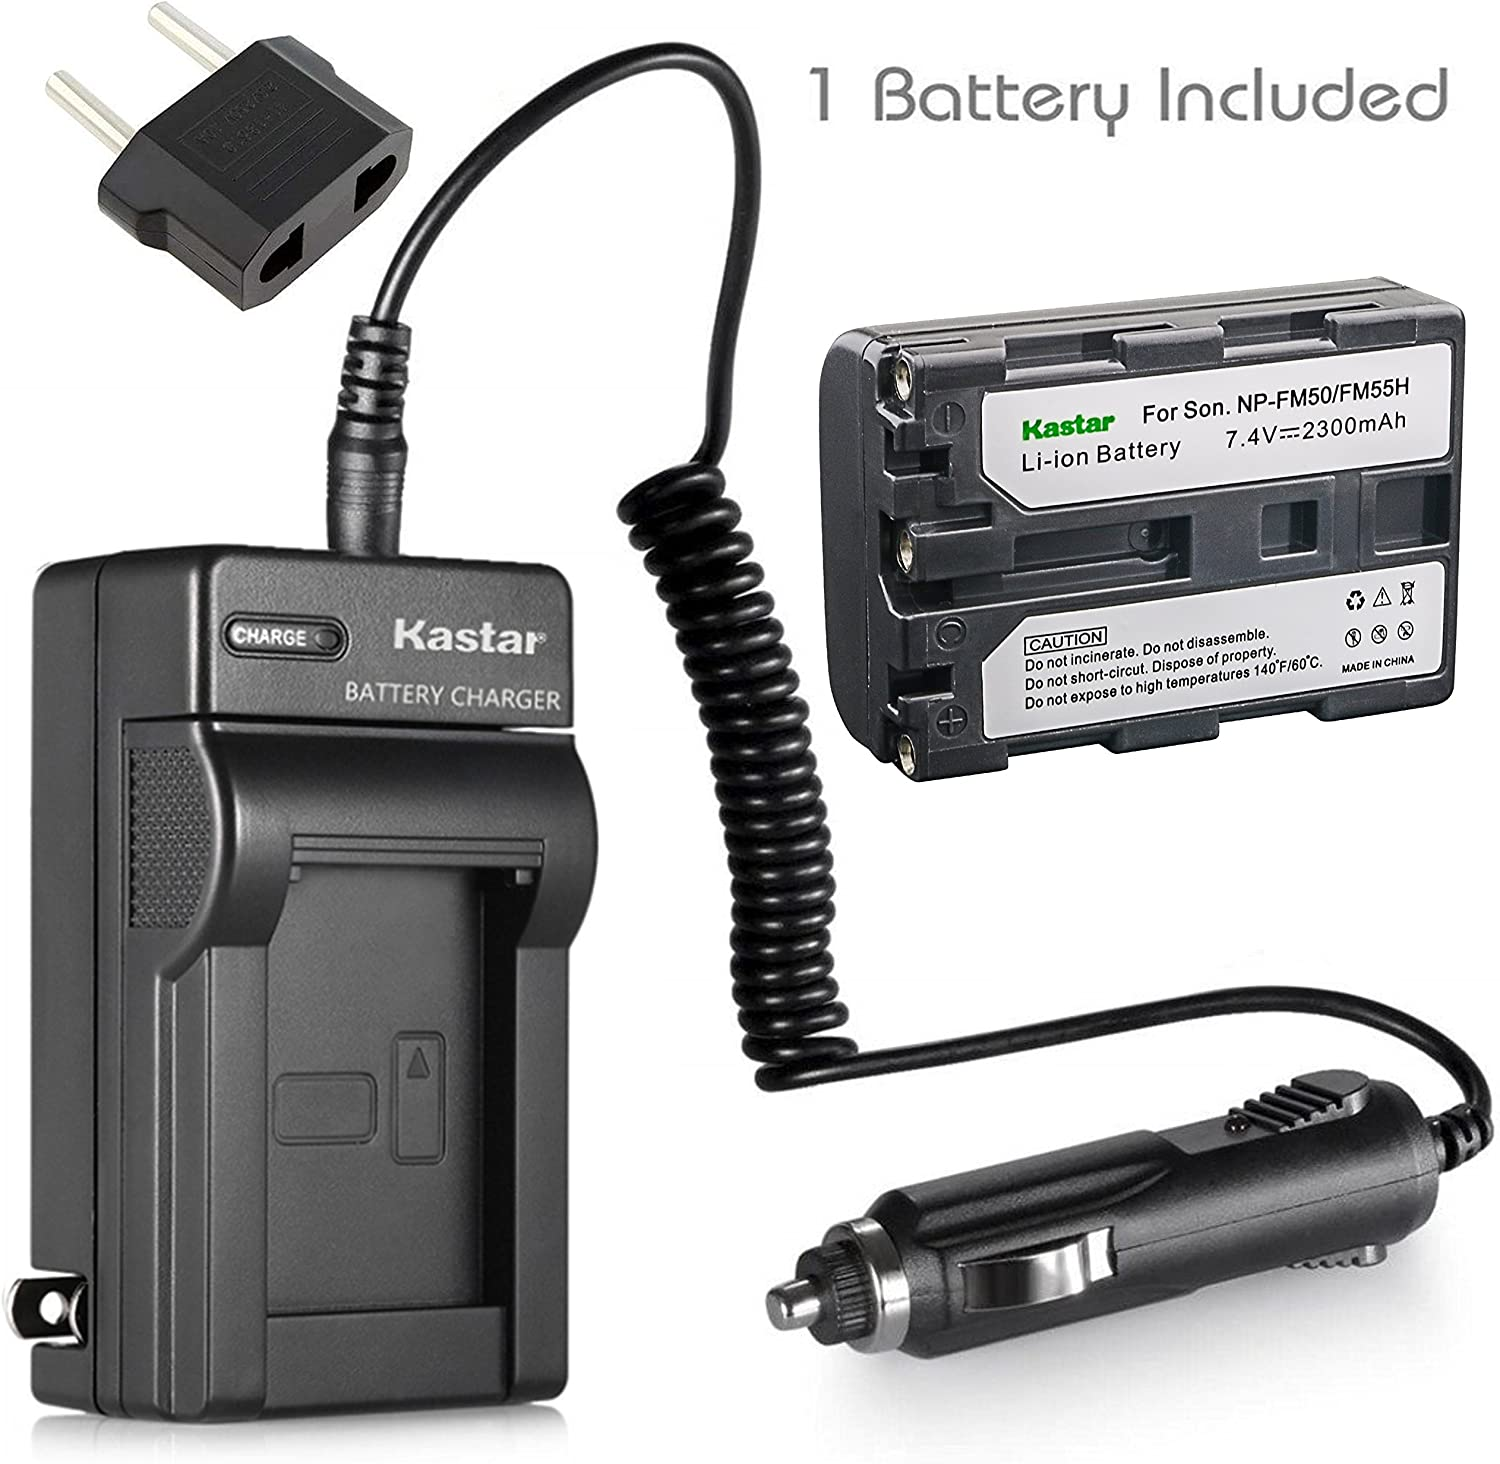 Battery and Charger Sony CCD-TRV408, CCD-TRV608 Hi8, CCD-TRV118 Handycam Camcorder